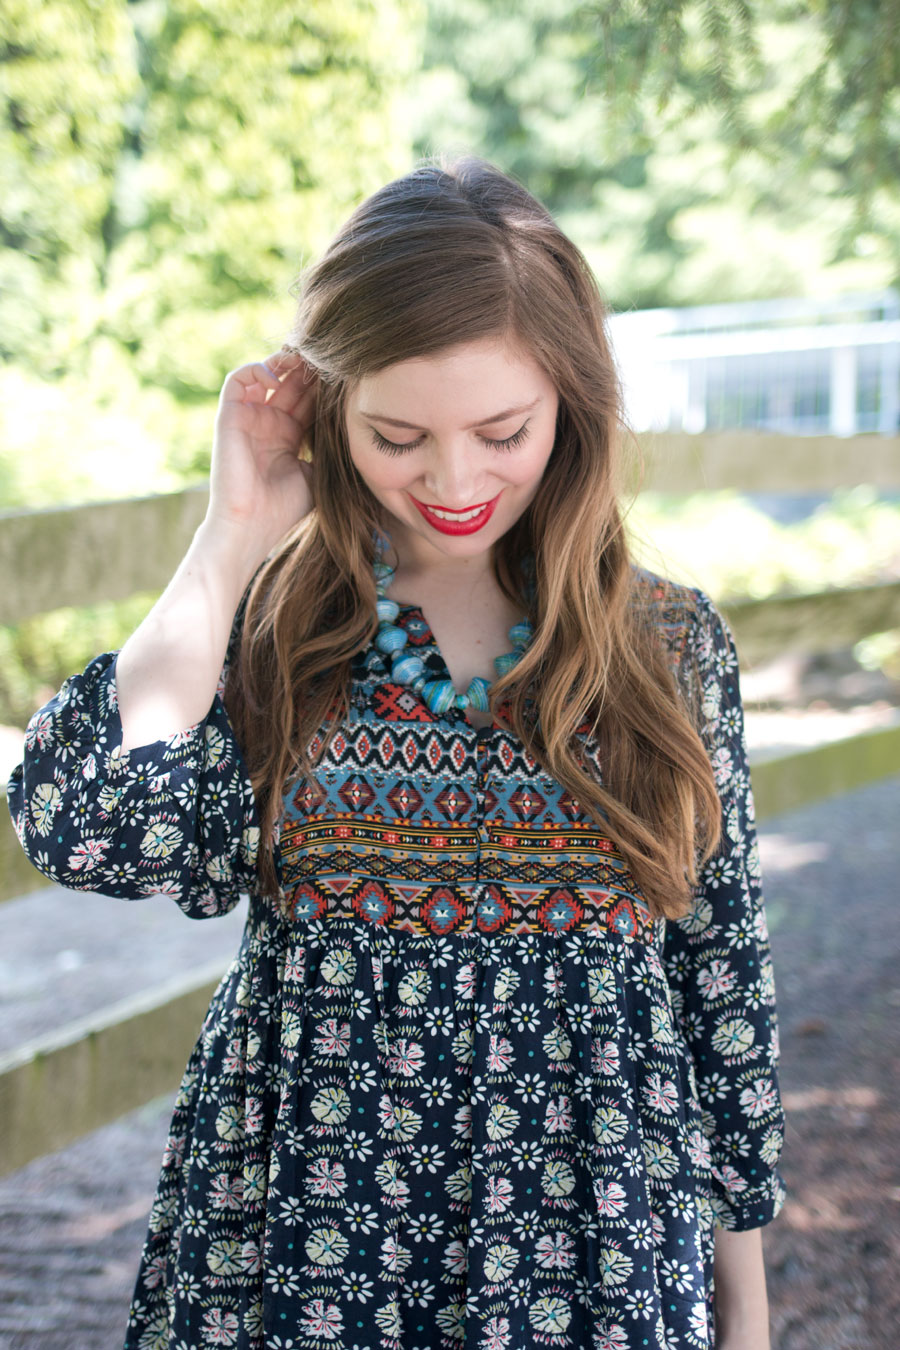 Mixed Print Bohemian Dress & Blue Ugandian Bead Necklace / hellorigby seattle fashion blog